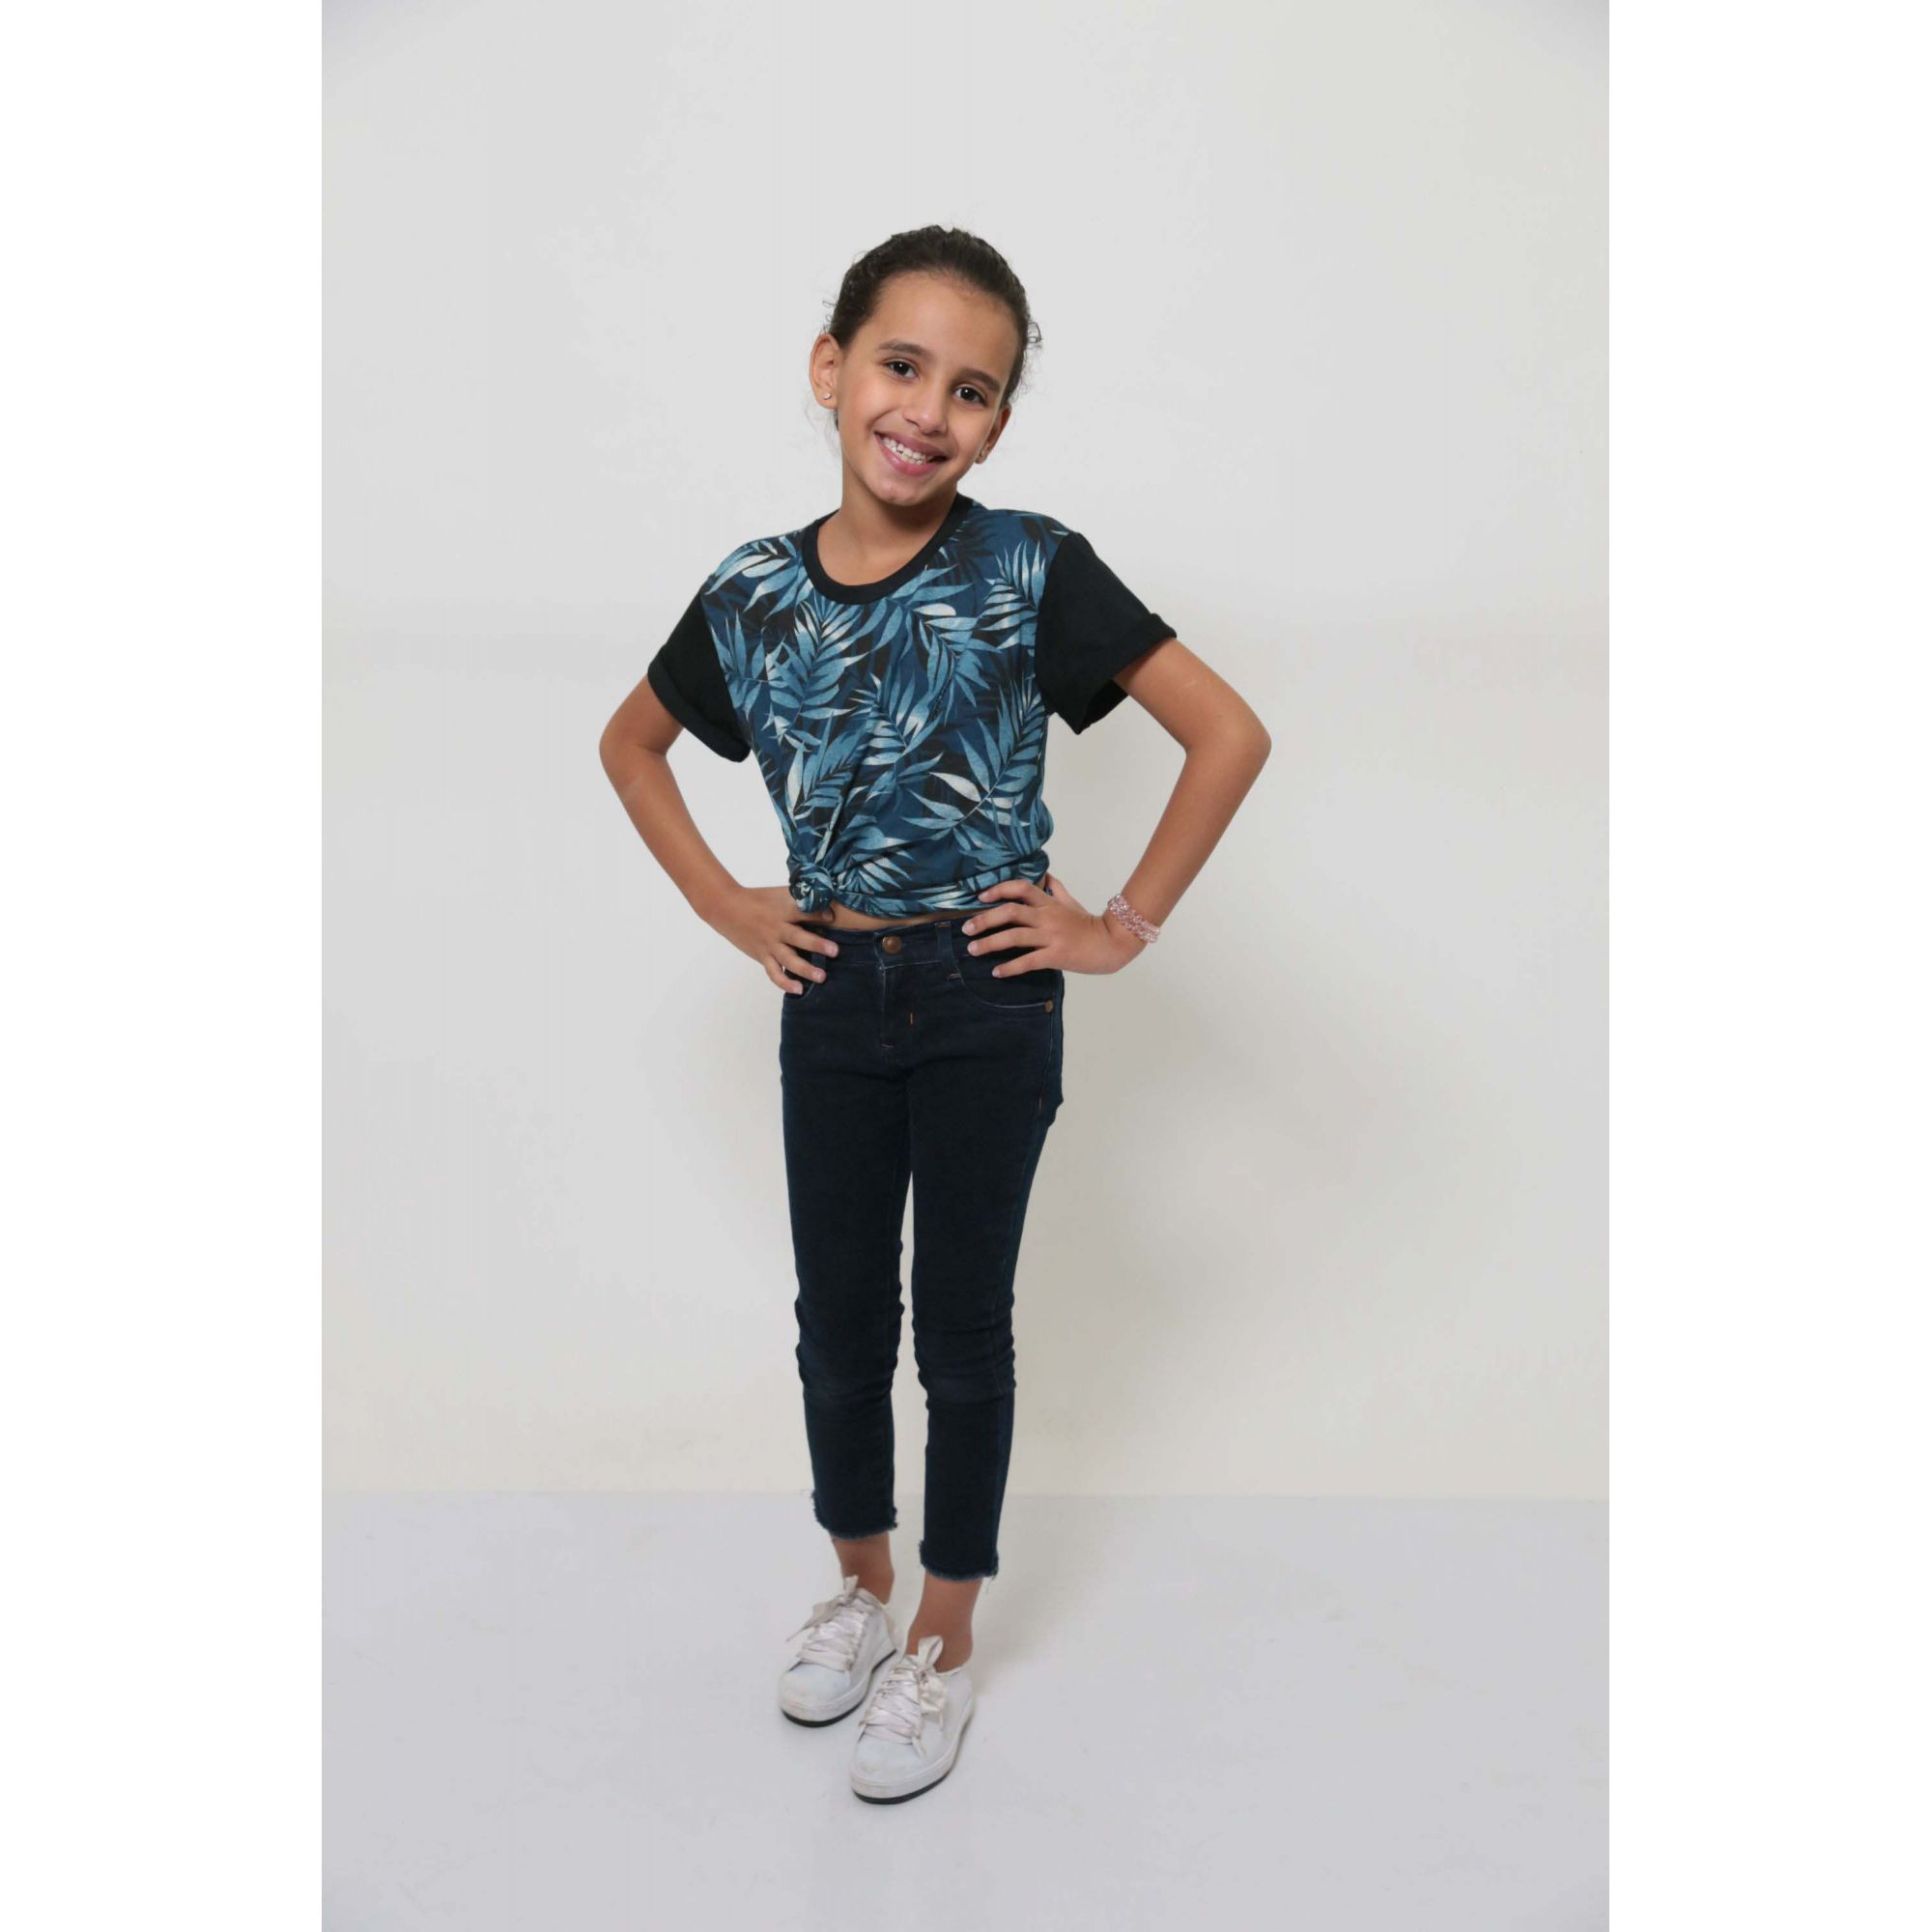 T-Shirt  ou Body - Tropical - Infantil - Unissex   - Heitor Fashion Brazil